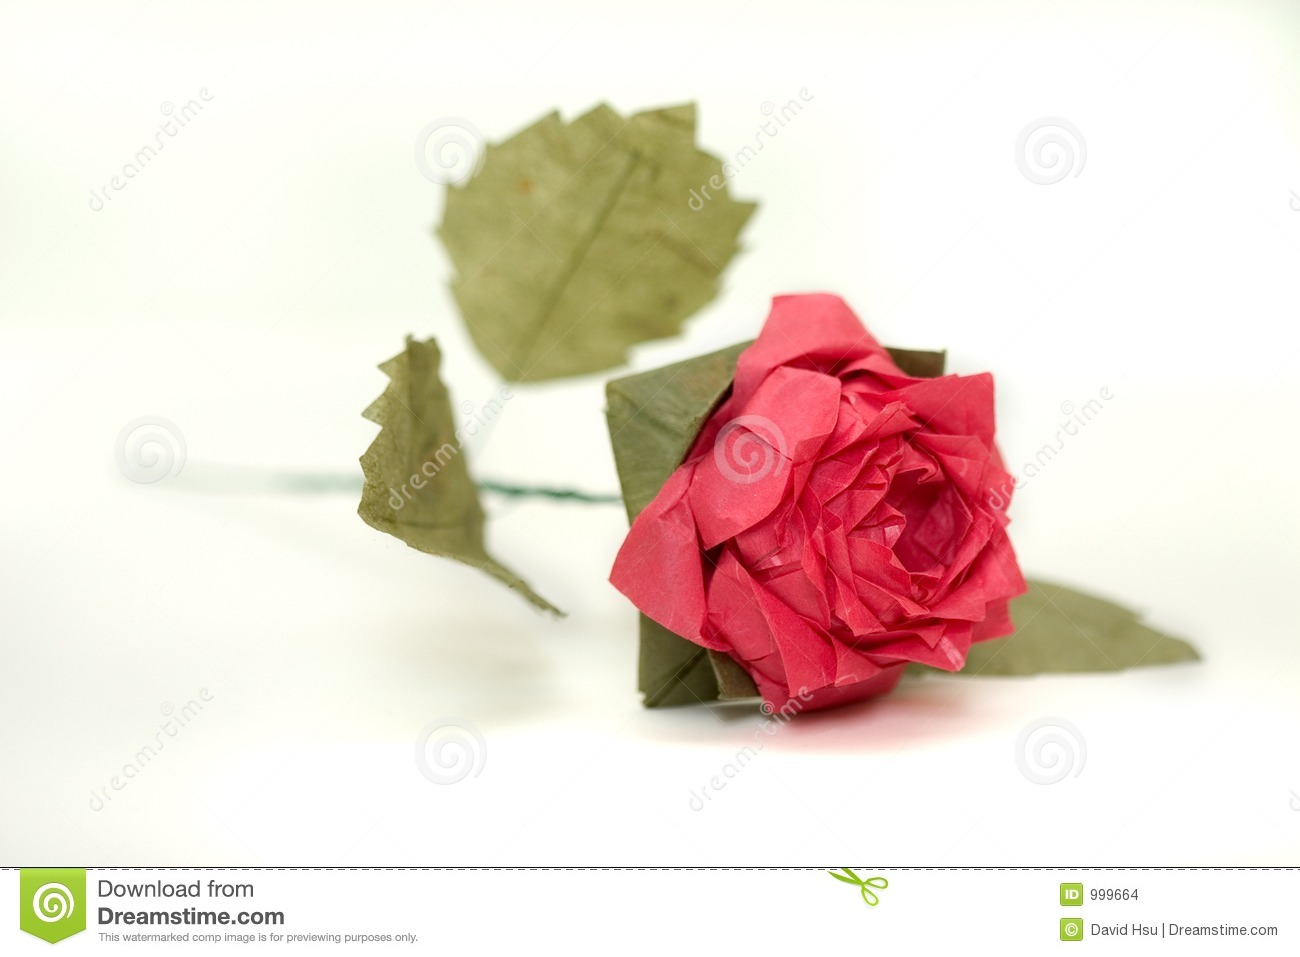 Complex origami rose 2 stock photo. Image of japanese ... - photo#5